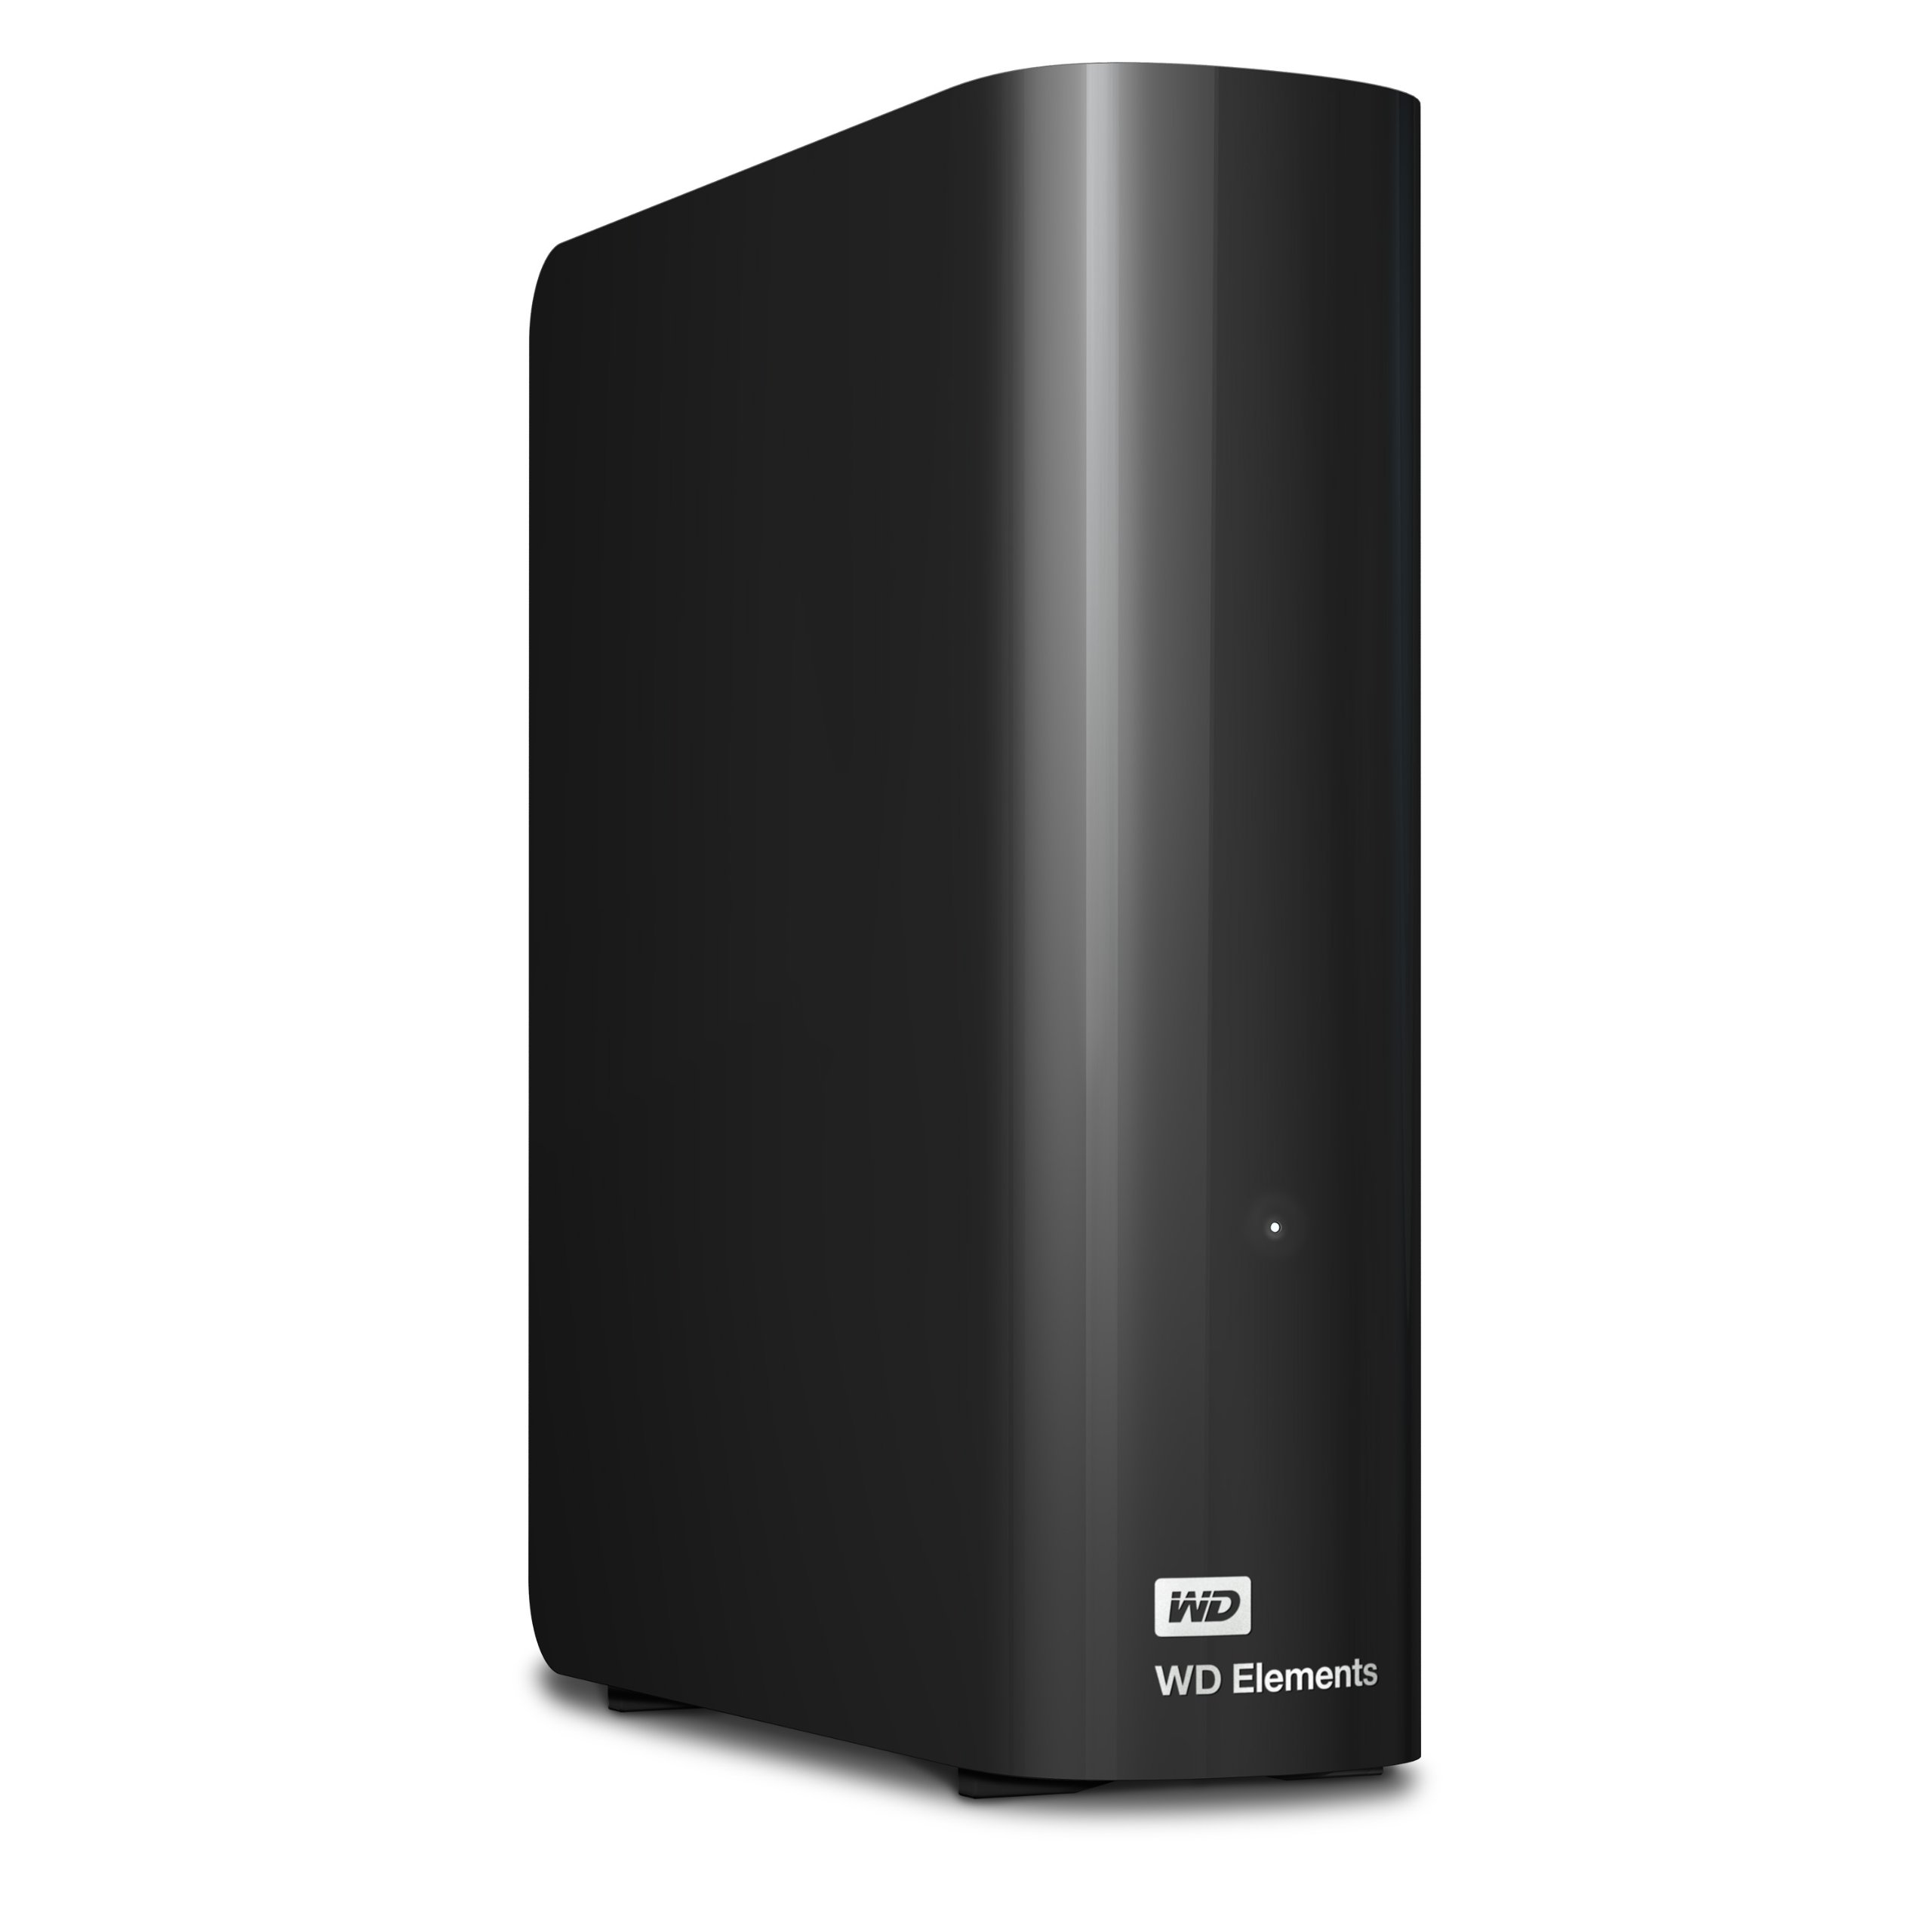 WD 6TB Elements Desktop Hard Drive - USB 3.0 - WDBWLG0060HBK-NESN